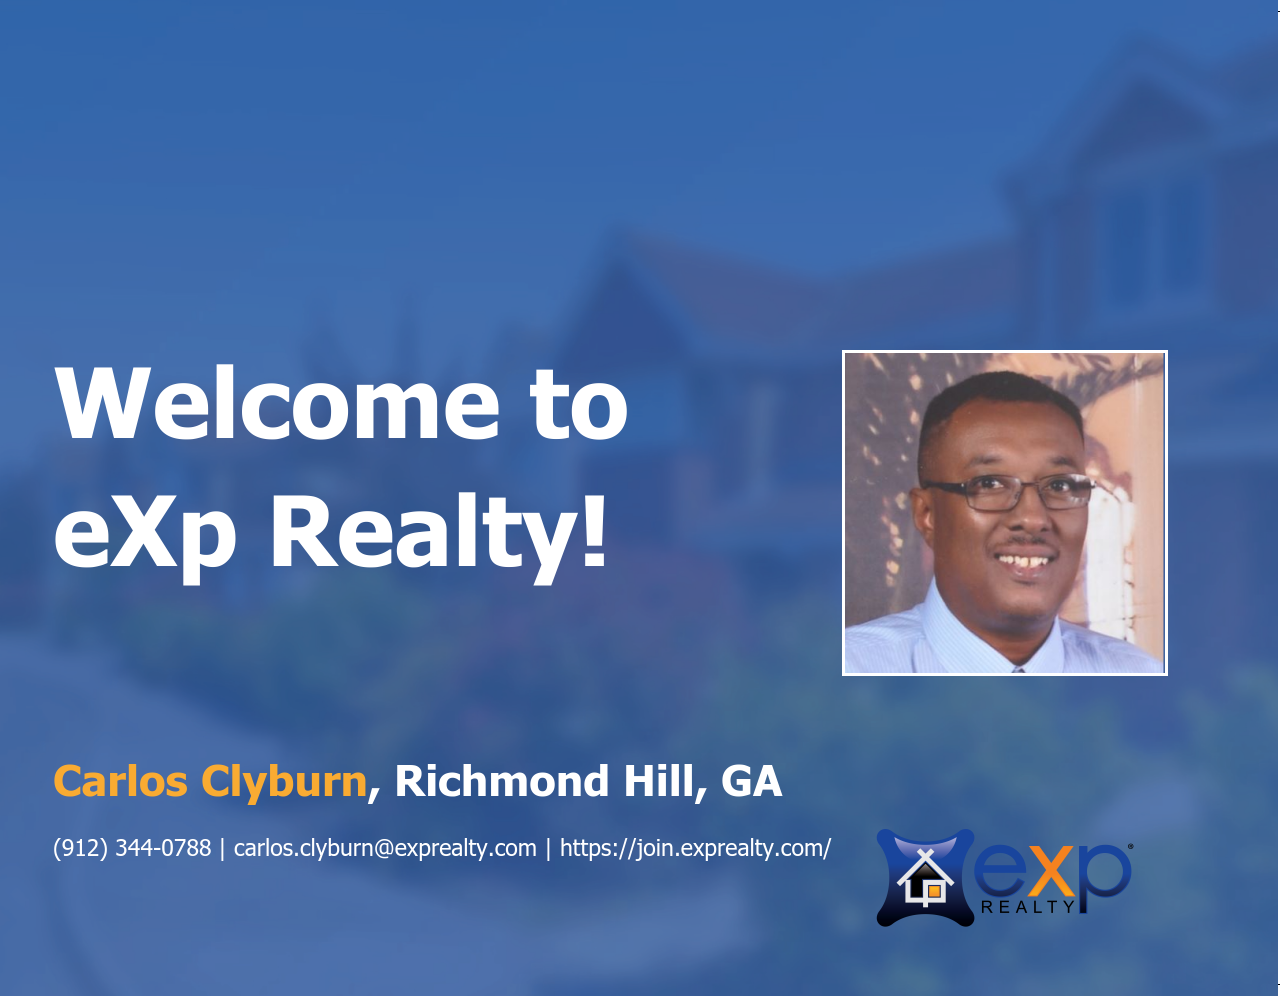 Welcome to eXp Realty Carlos Clyburn!